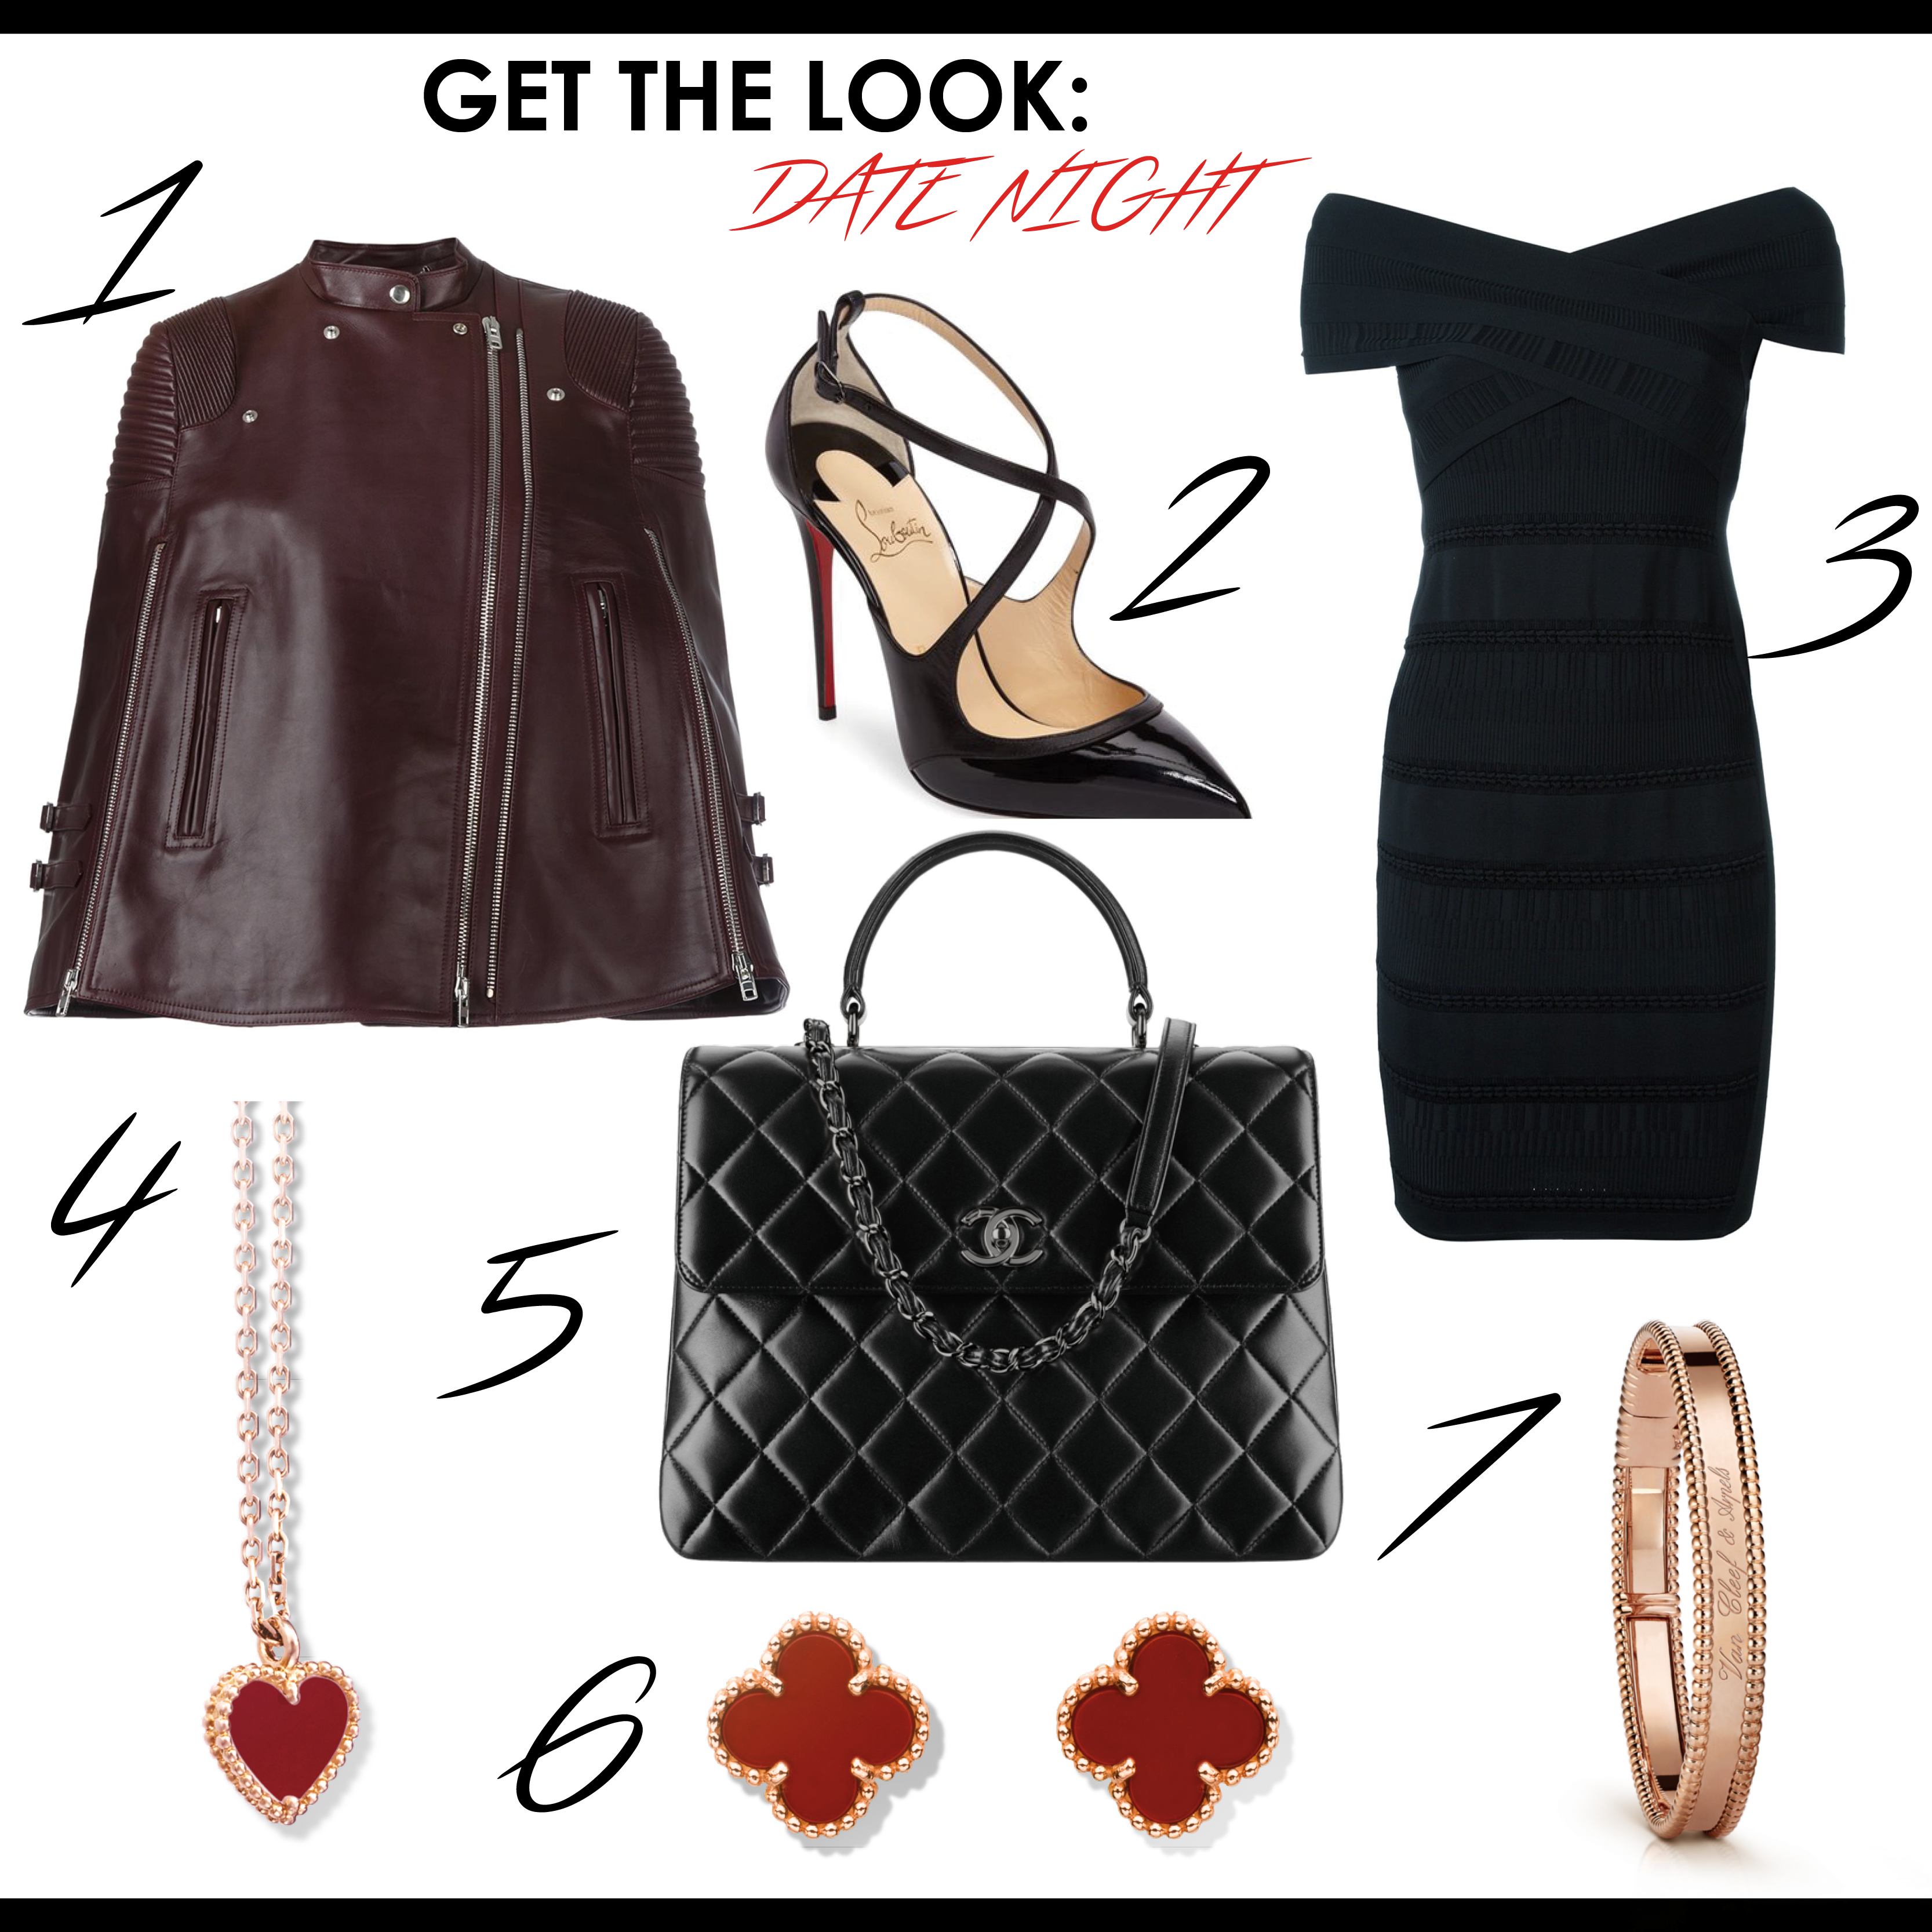 Get the look - valentinesday14